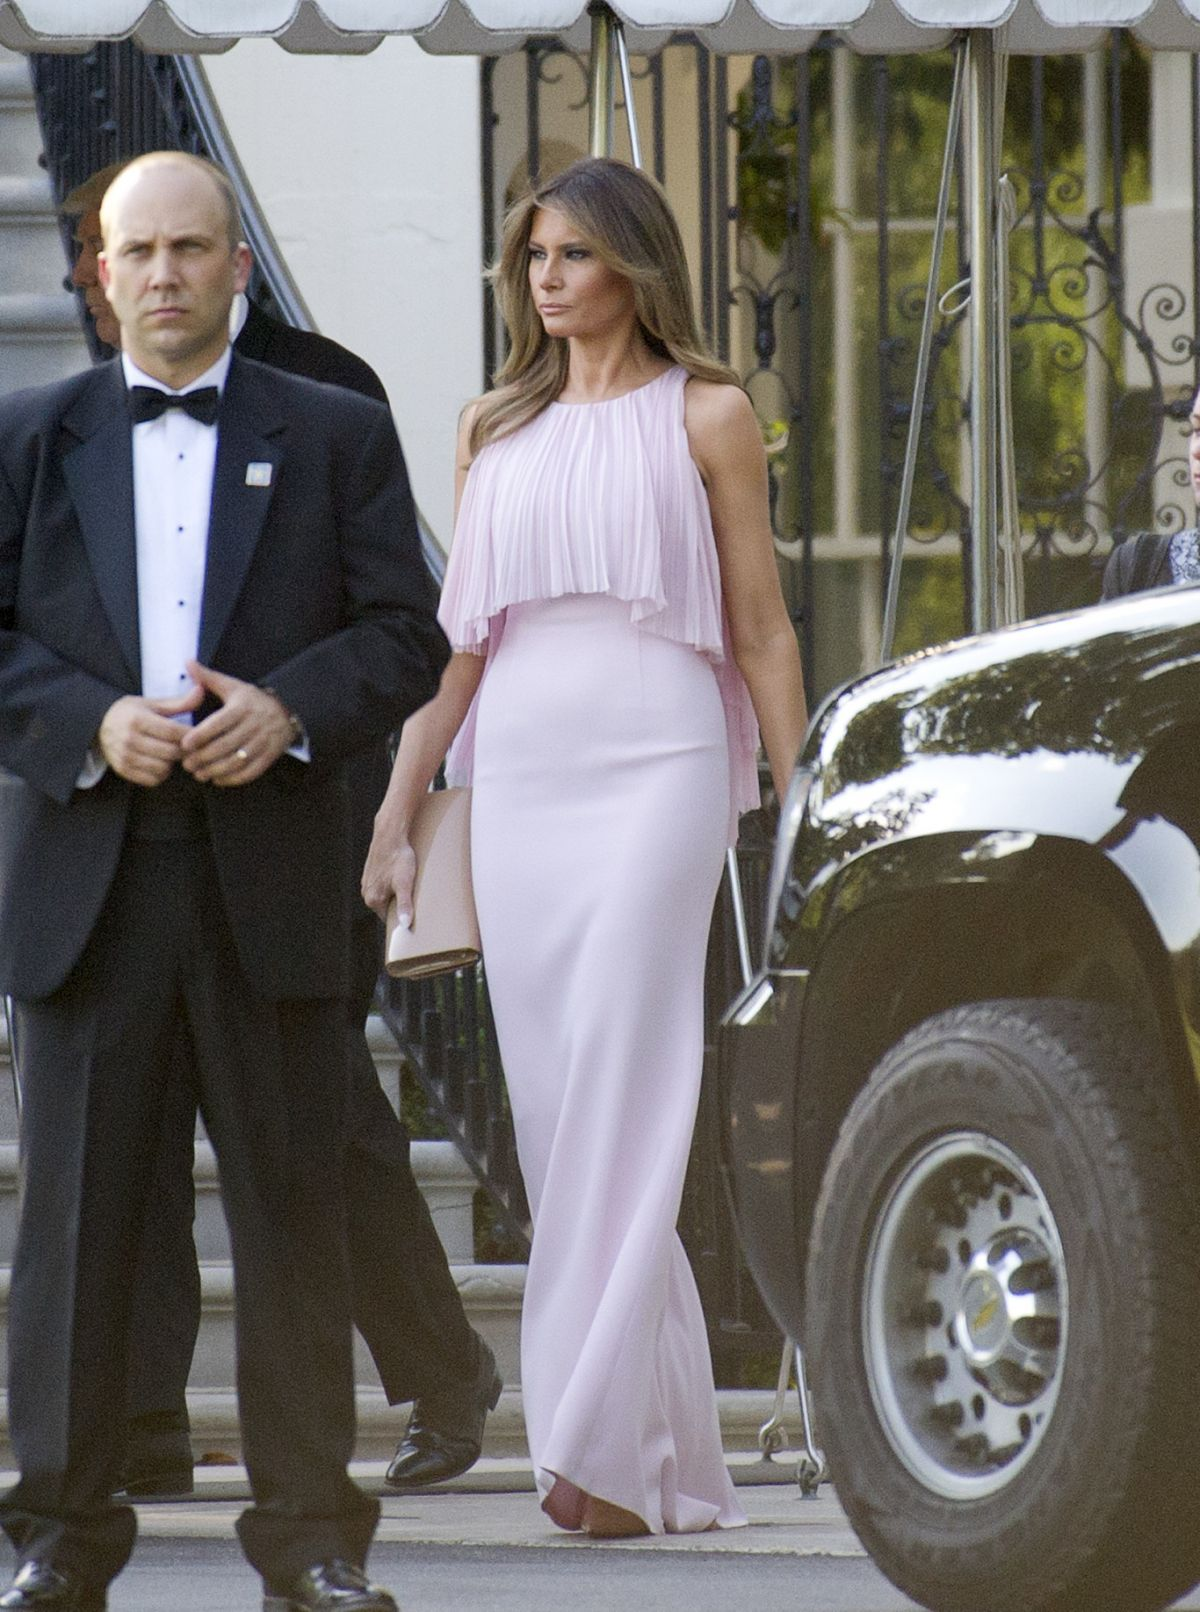 MELANIE TRUMP Depart White House in Washington 06/24/2017